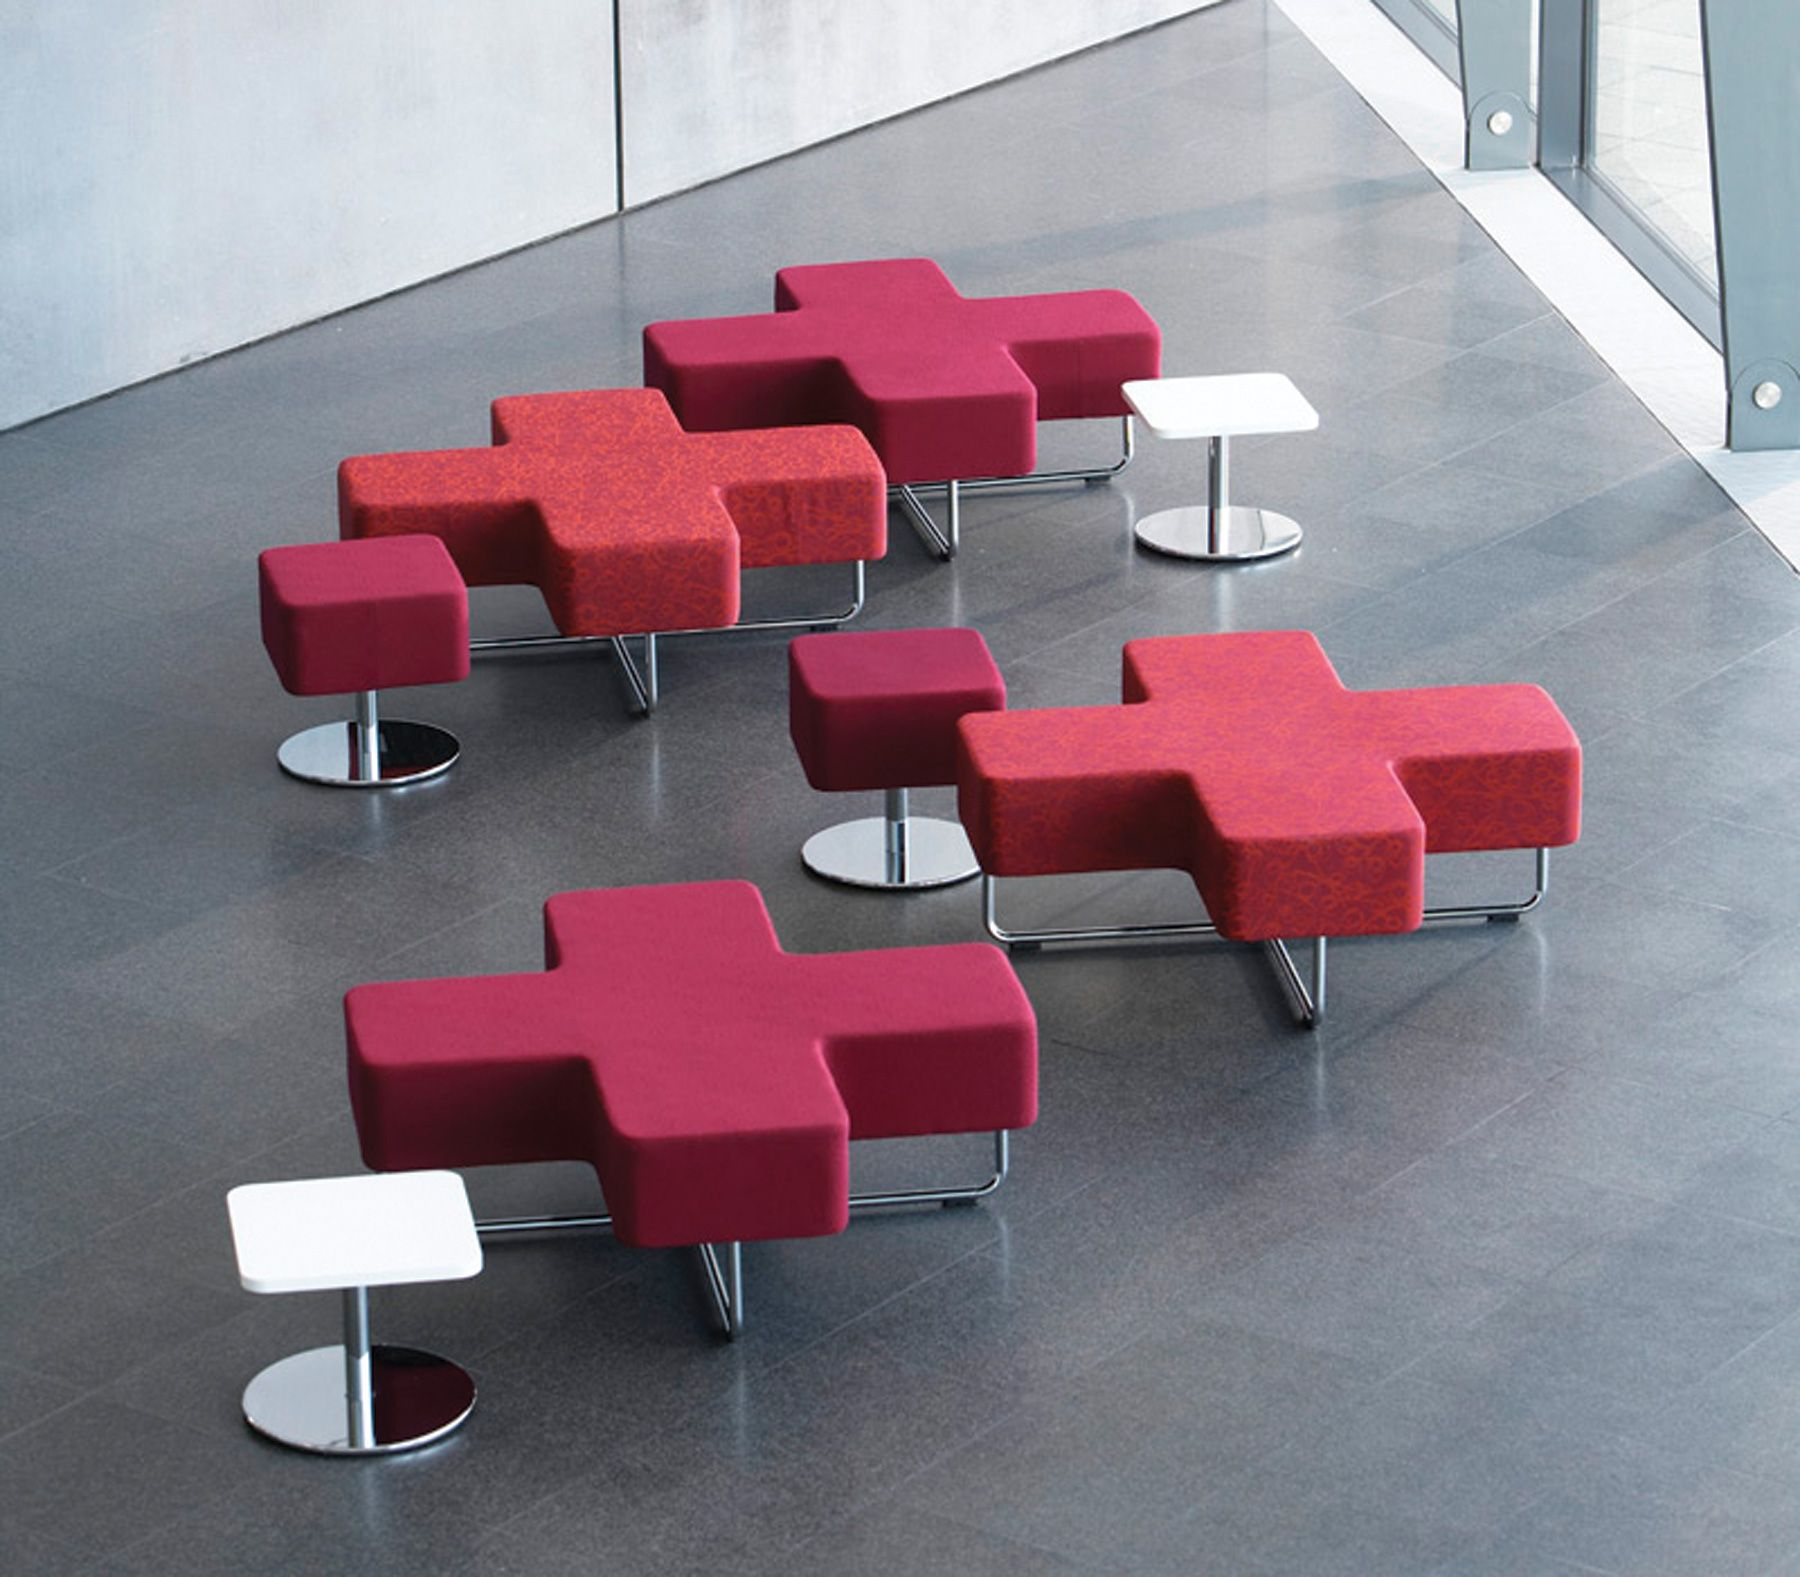 Sit Down Transforming Libraries Seating With A Purpose